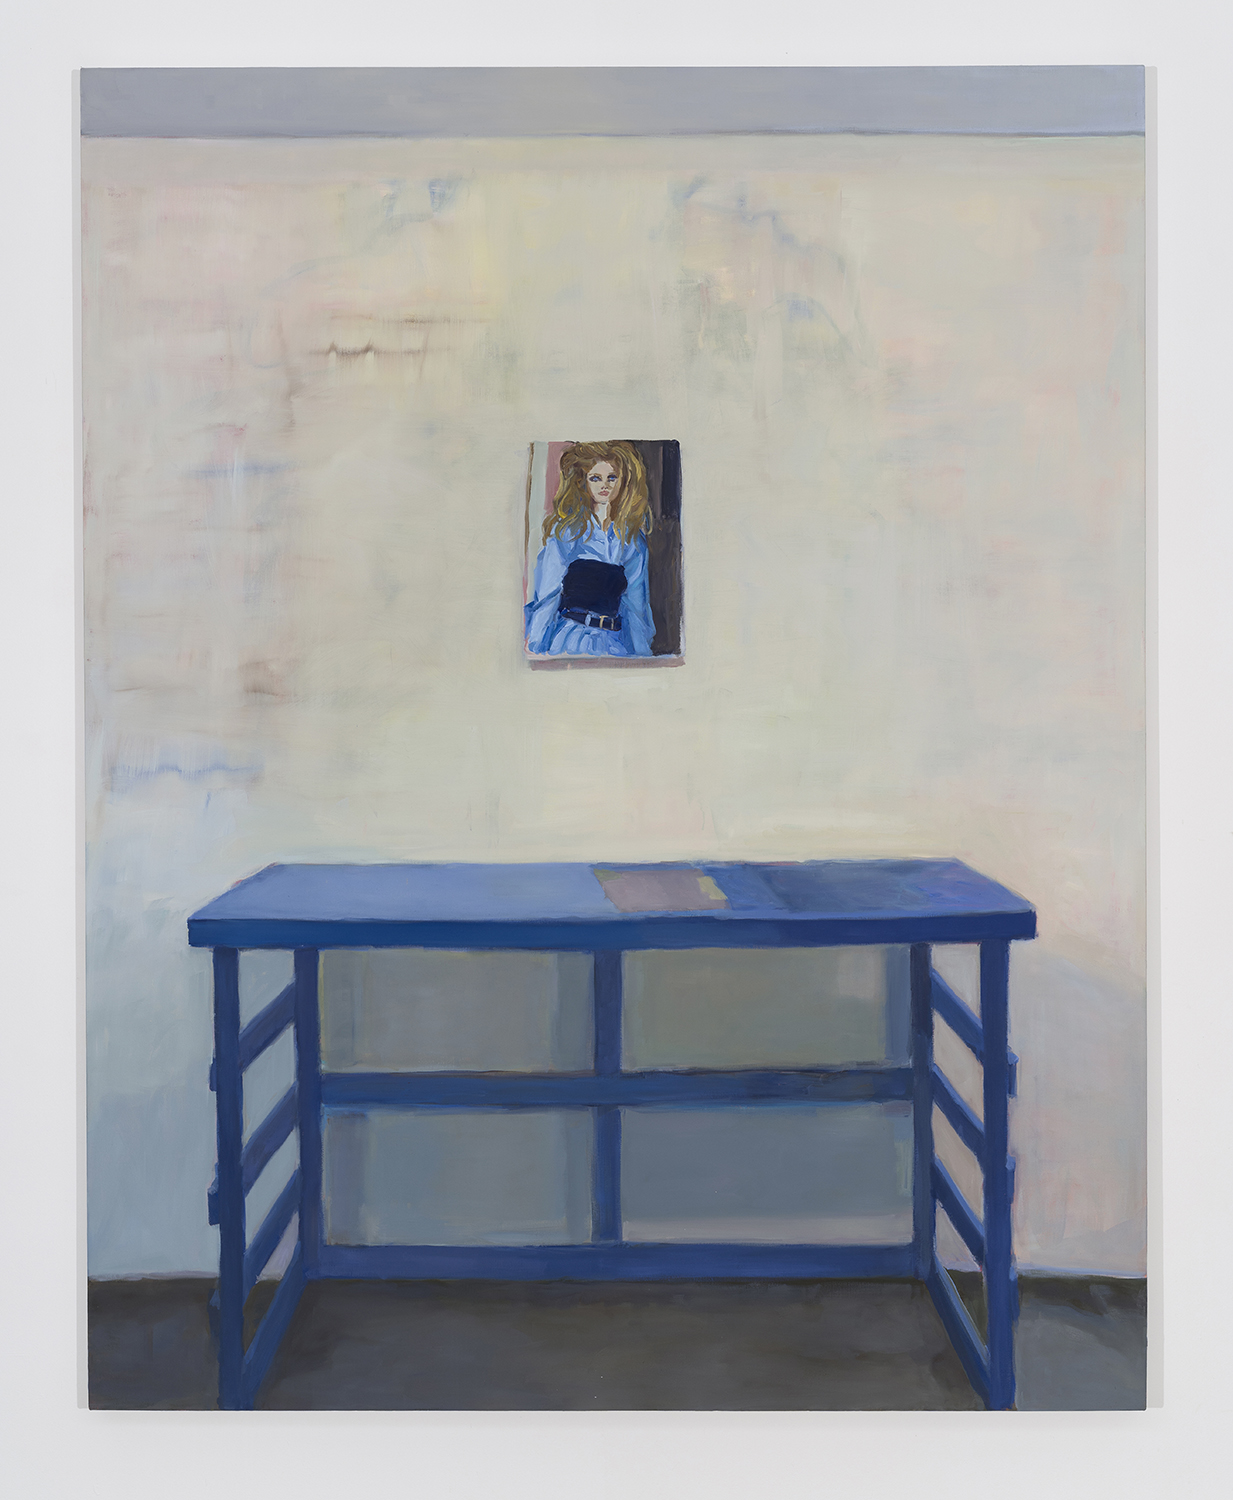 Border Crossings, 2020 | Between the glossies and the grotesque Janet Werner paints a world